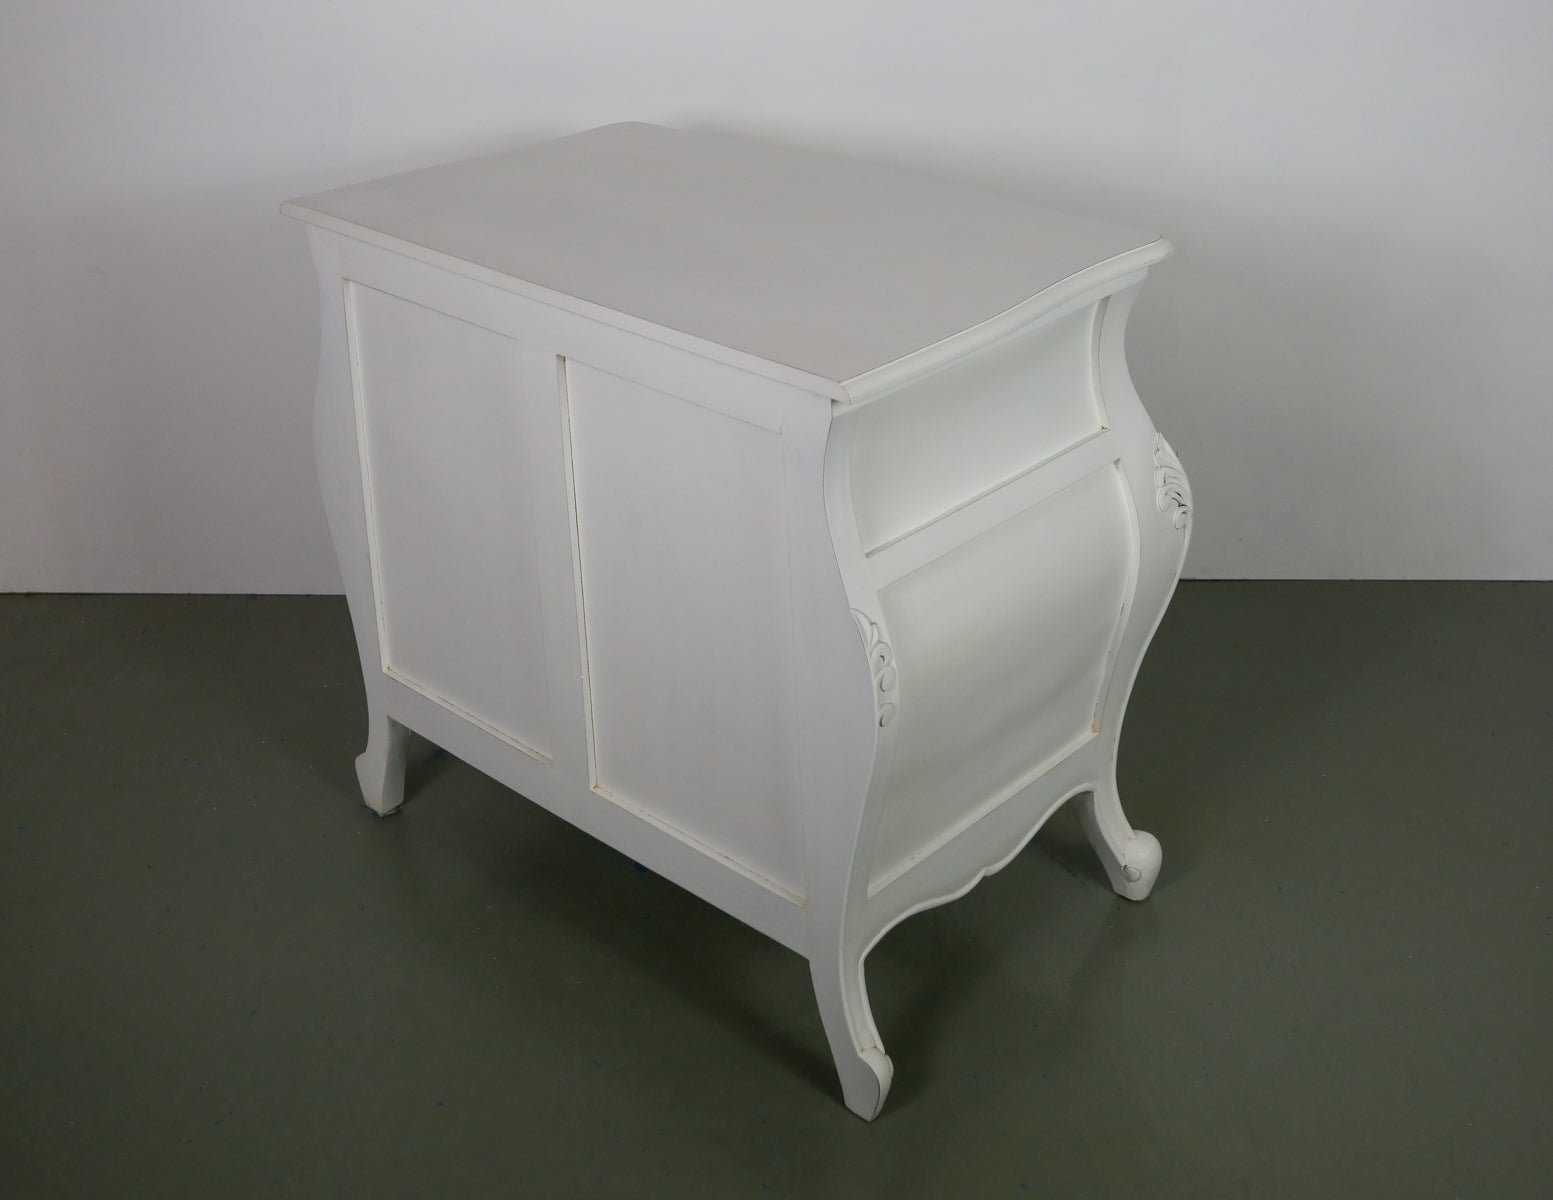 French Country Urban Living Chest of Drawers